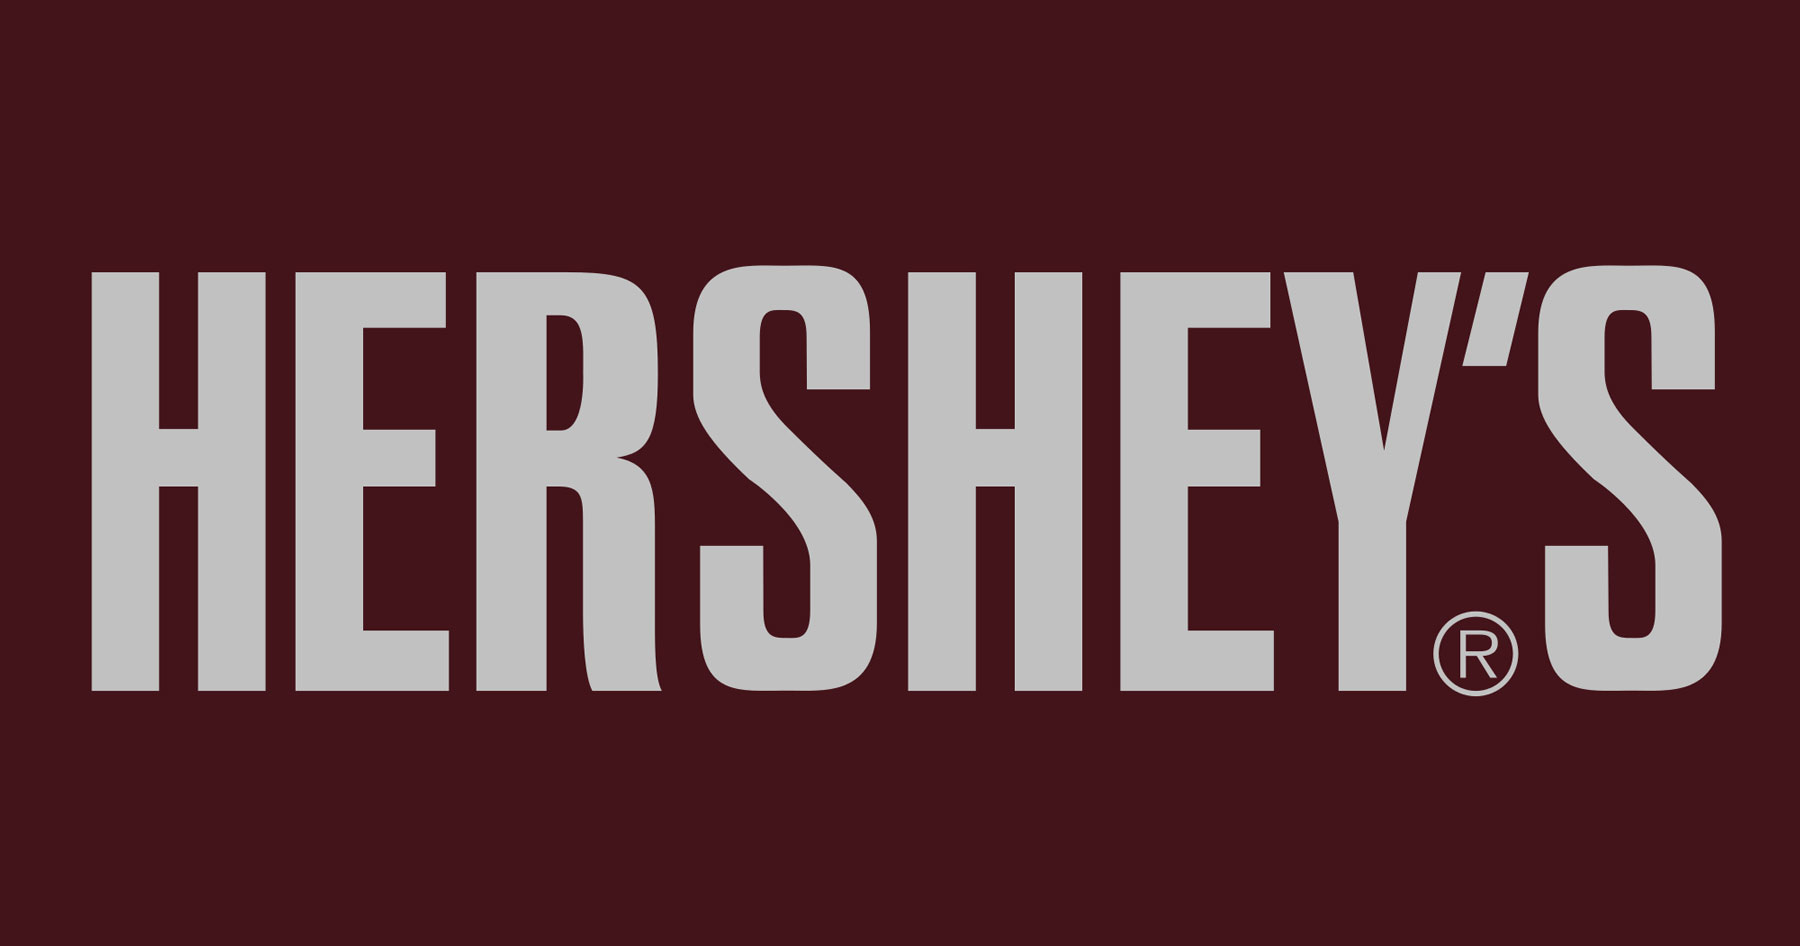 4 Highlights From Hershey S 4th Quarter 2018